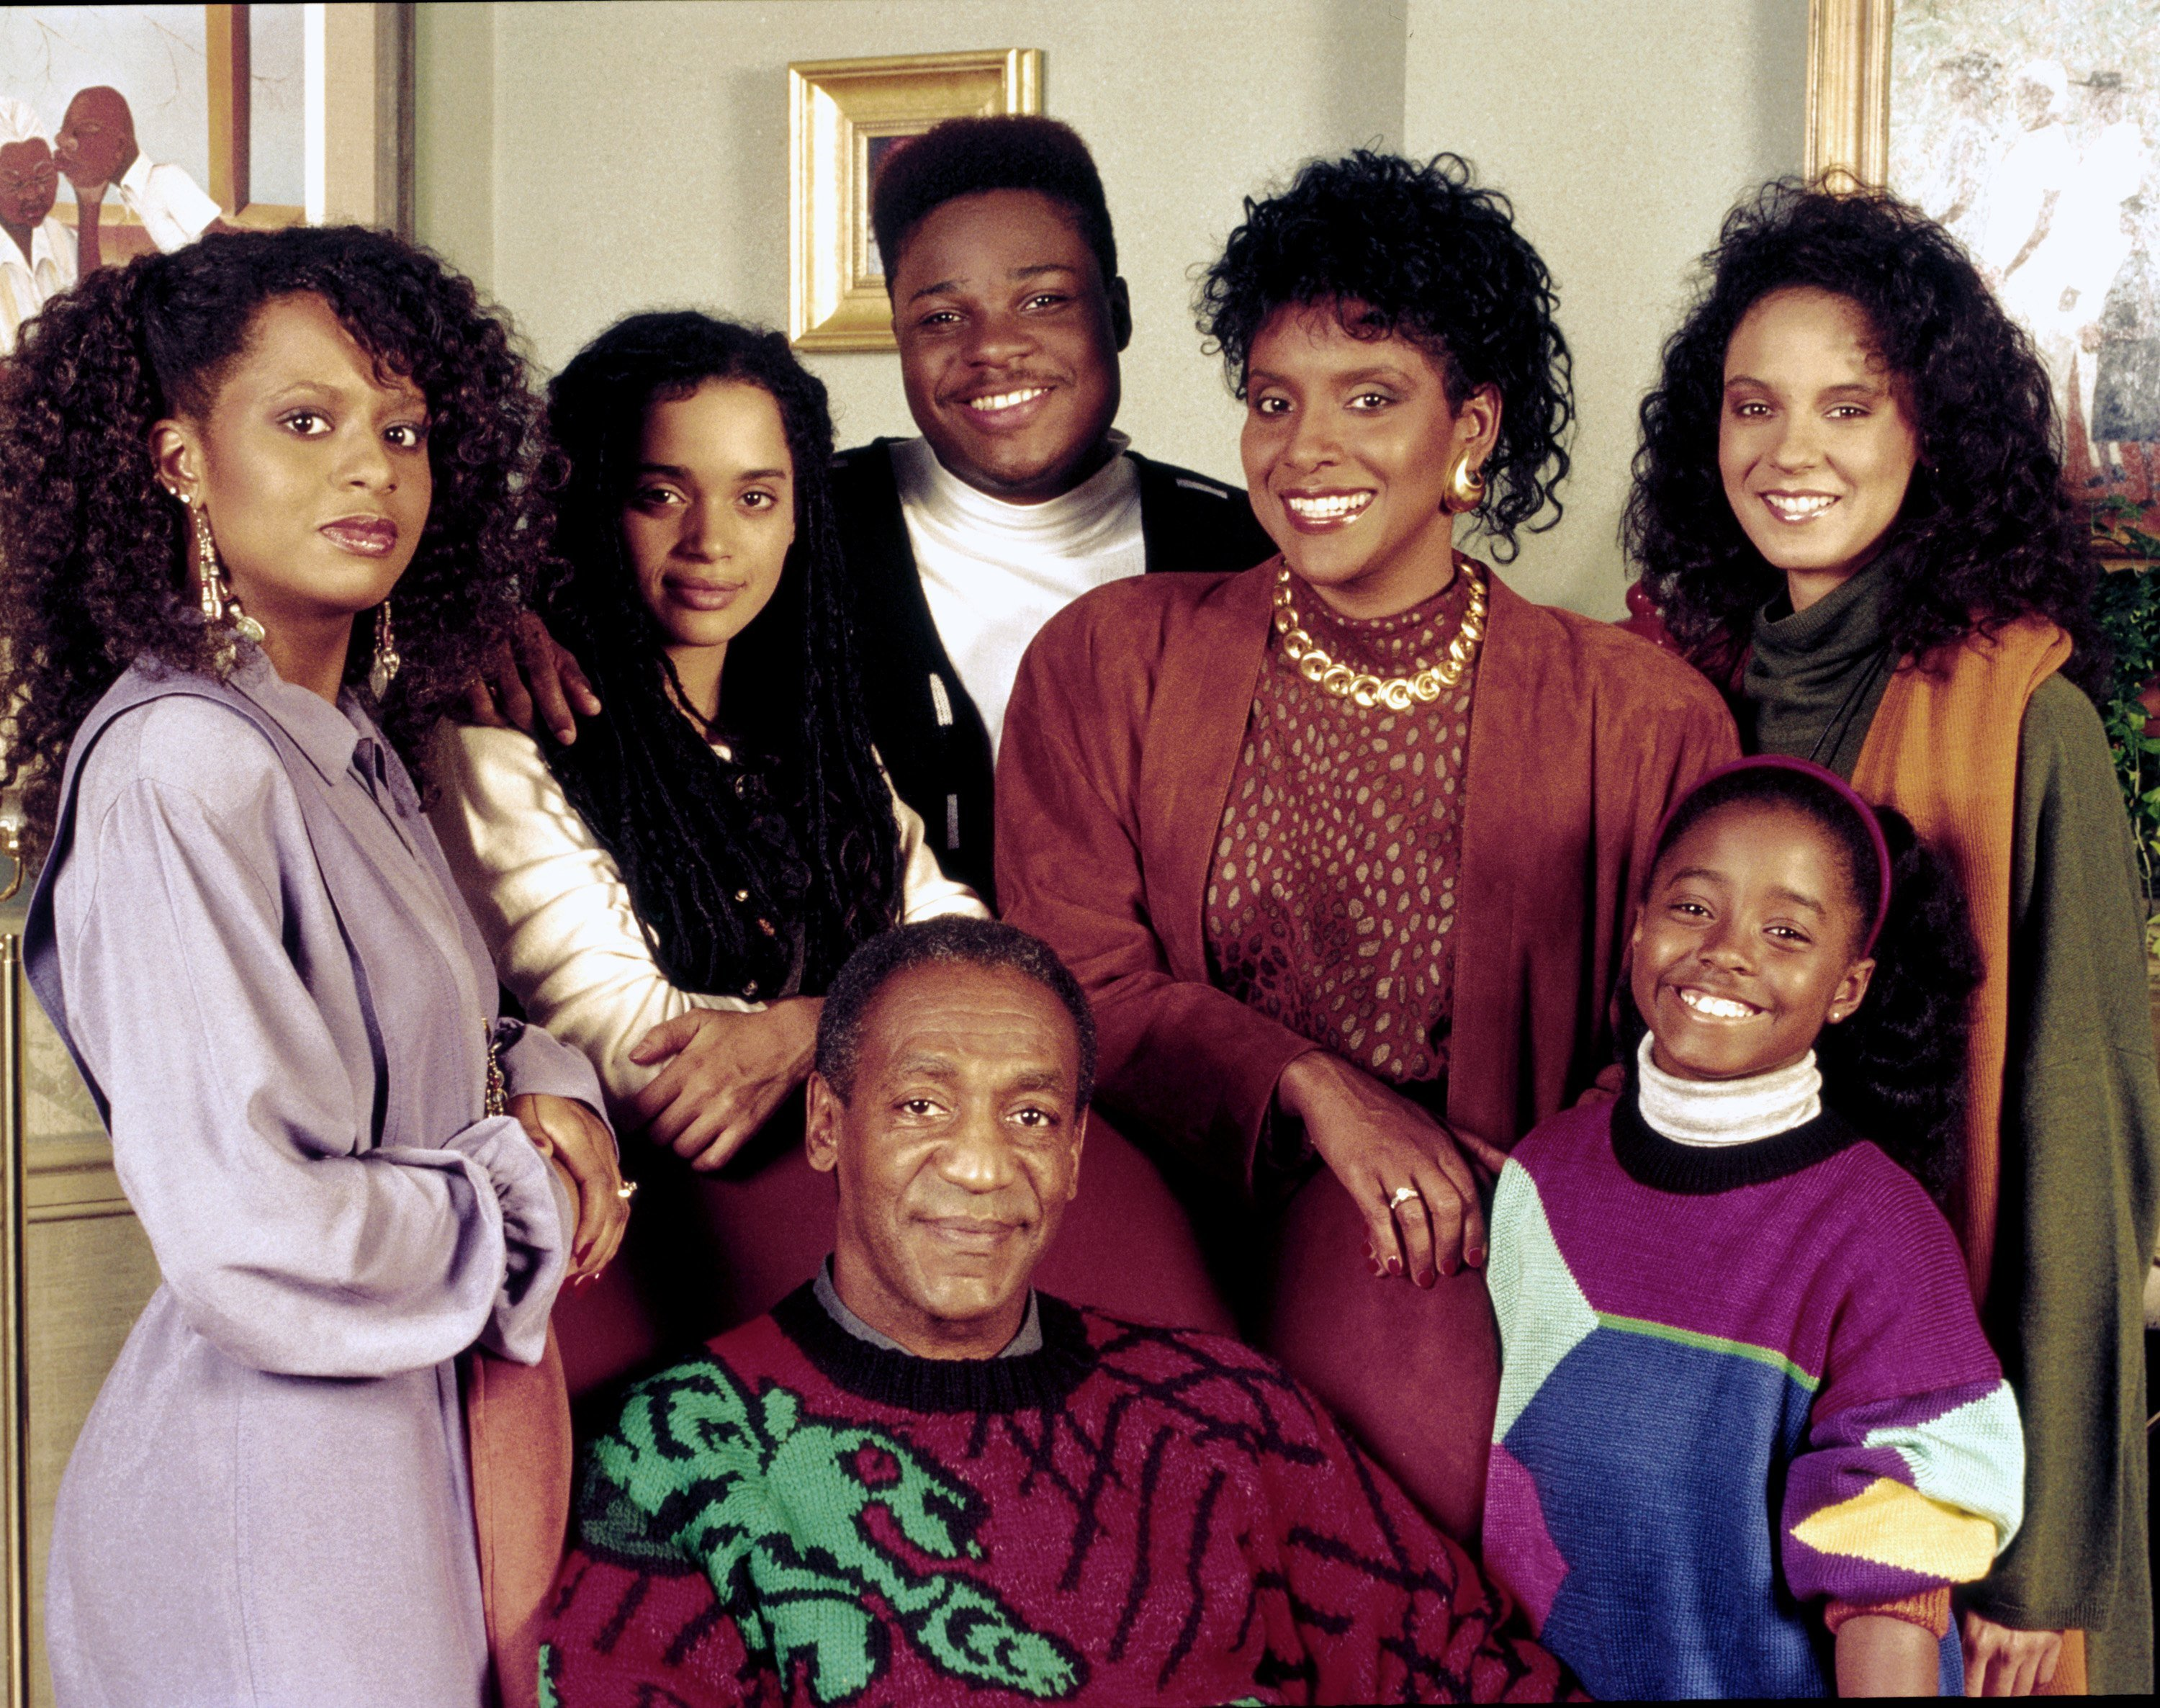 "Bill Cosby, Tempestt Bledsoe, Lisa Bonet, Malcolm-Jamal Warner, Phylicia Rashad, Keshia Knight Pulliam, and Sabrina Le Beauf. ""The Cosby Show"" Season 6 